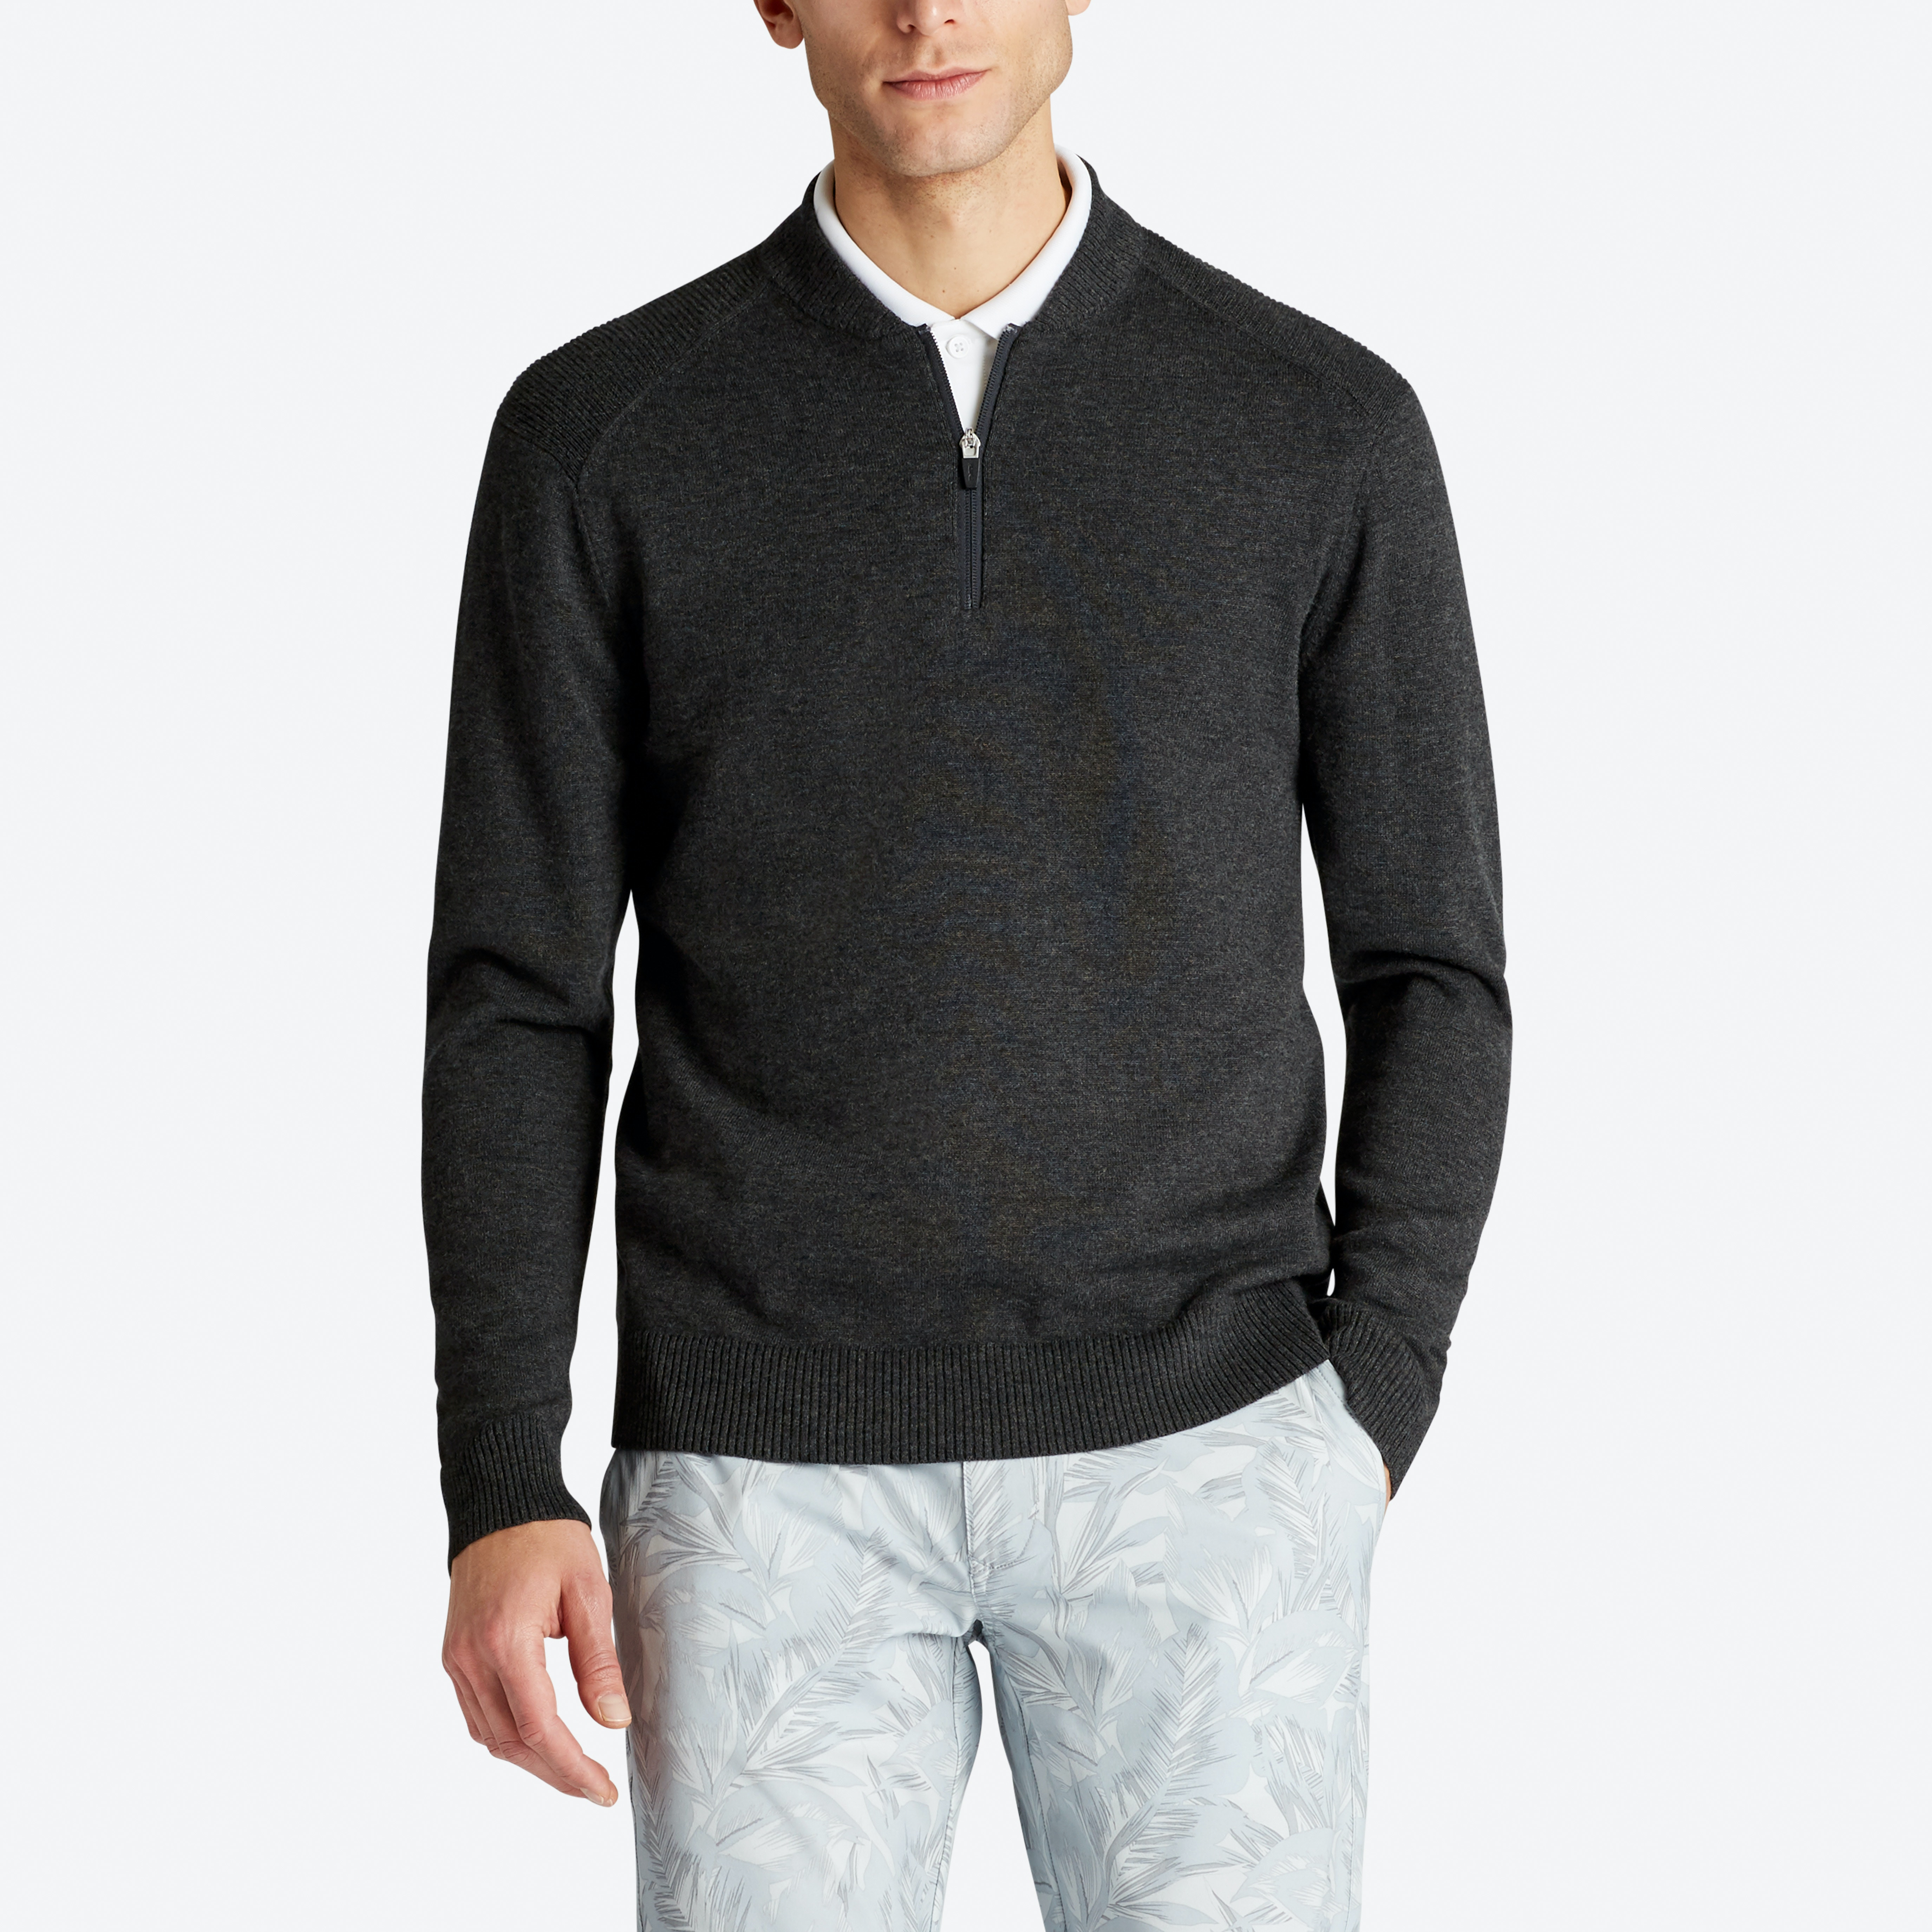 Knockdown Club Collar Golf Sweater